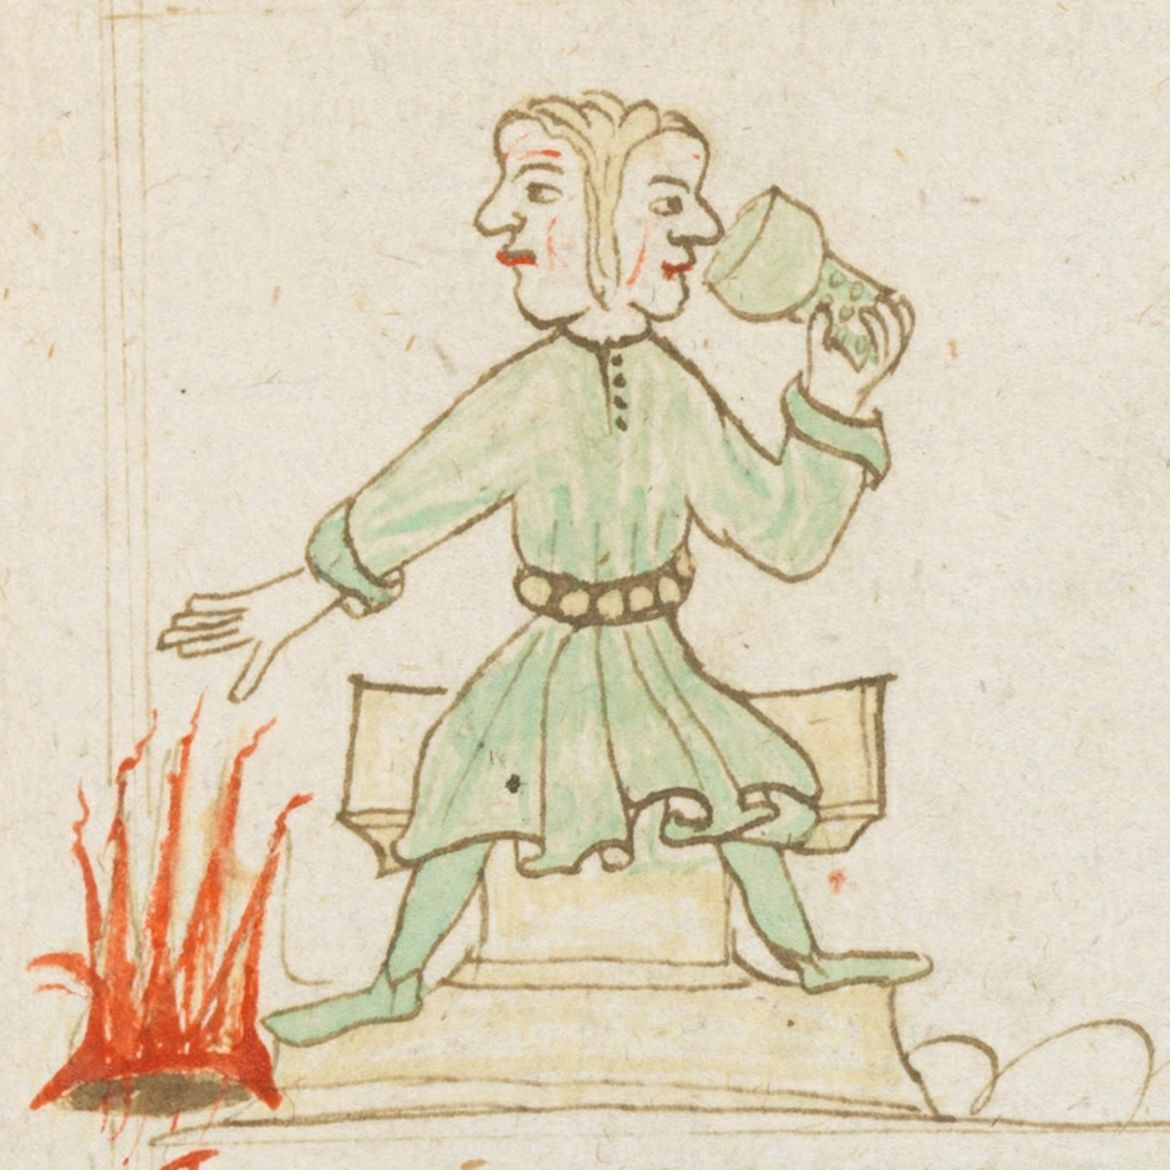 Cover Photo: photo by e-codices/flickr